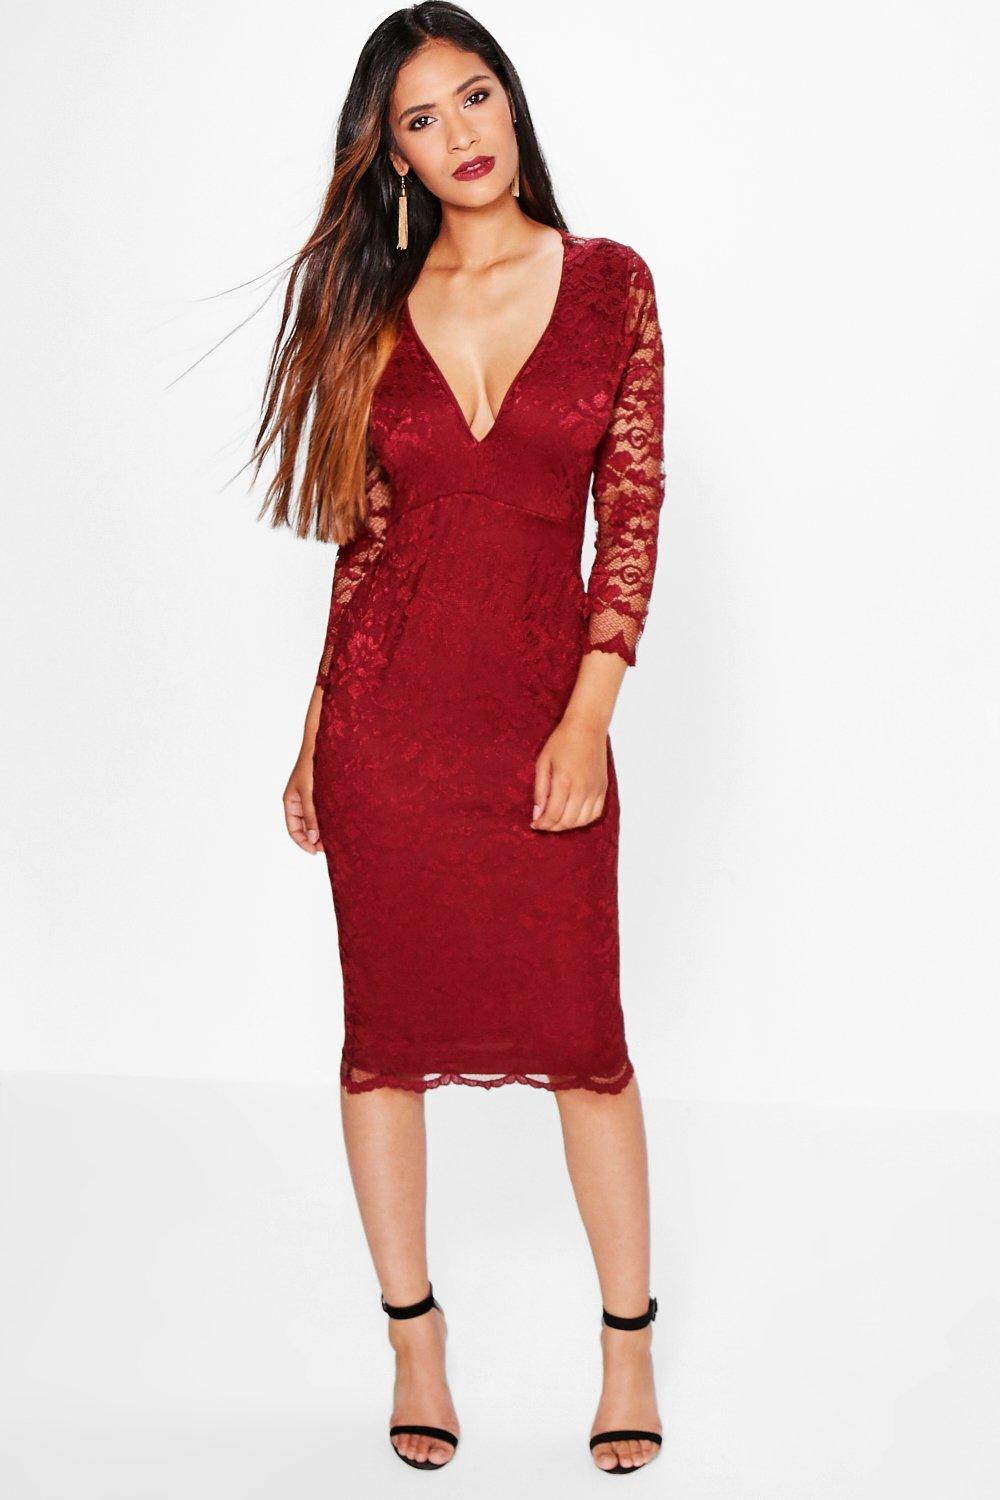 Cat All Over Scallop Lace Midi Bodycon Dress